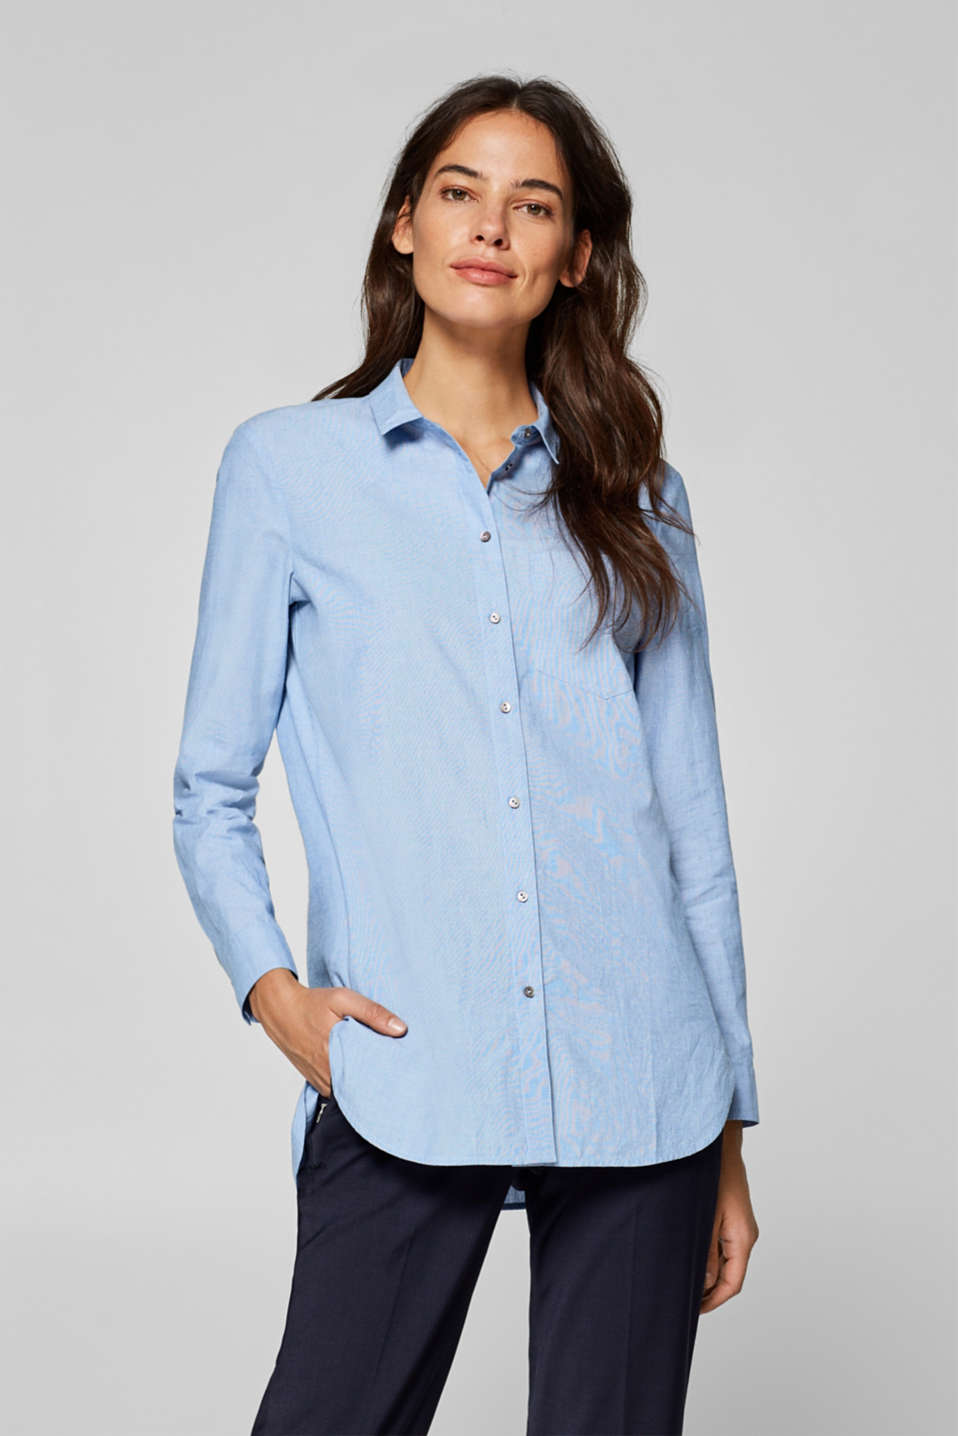 Esprit - Long basic shirt blouse, 100% cotton